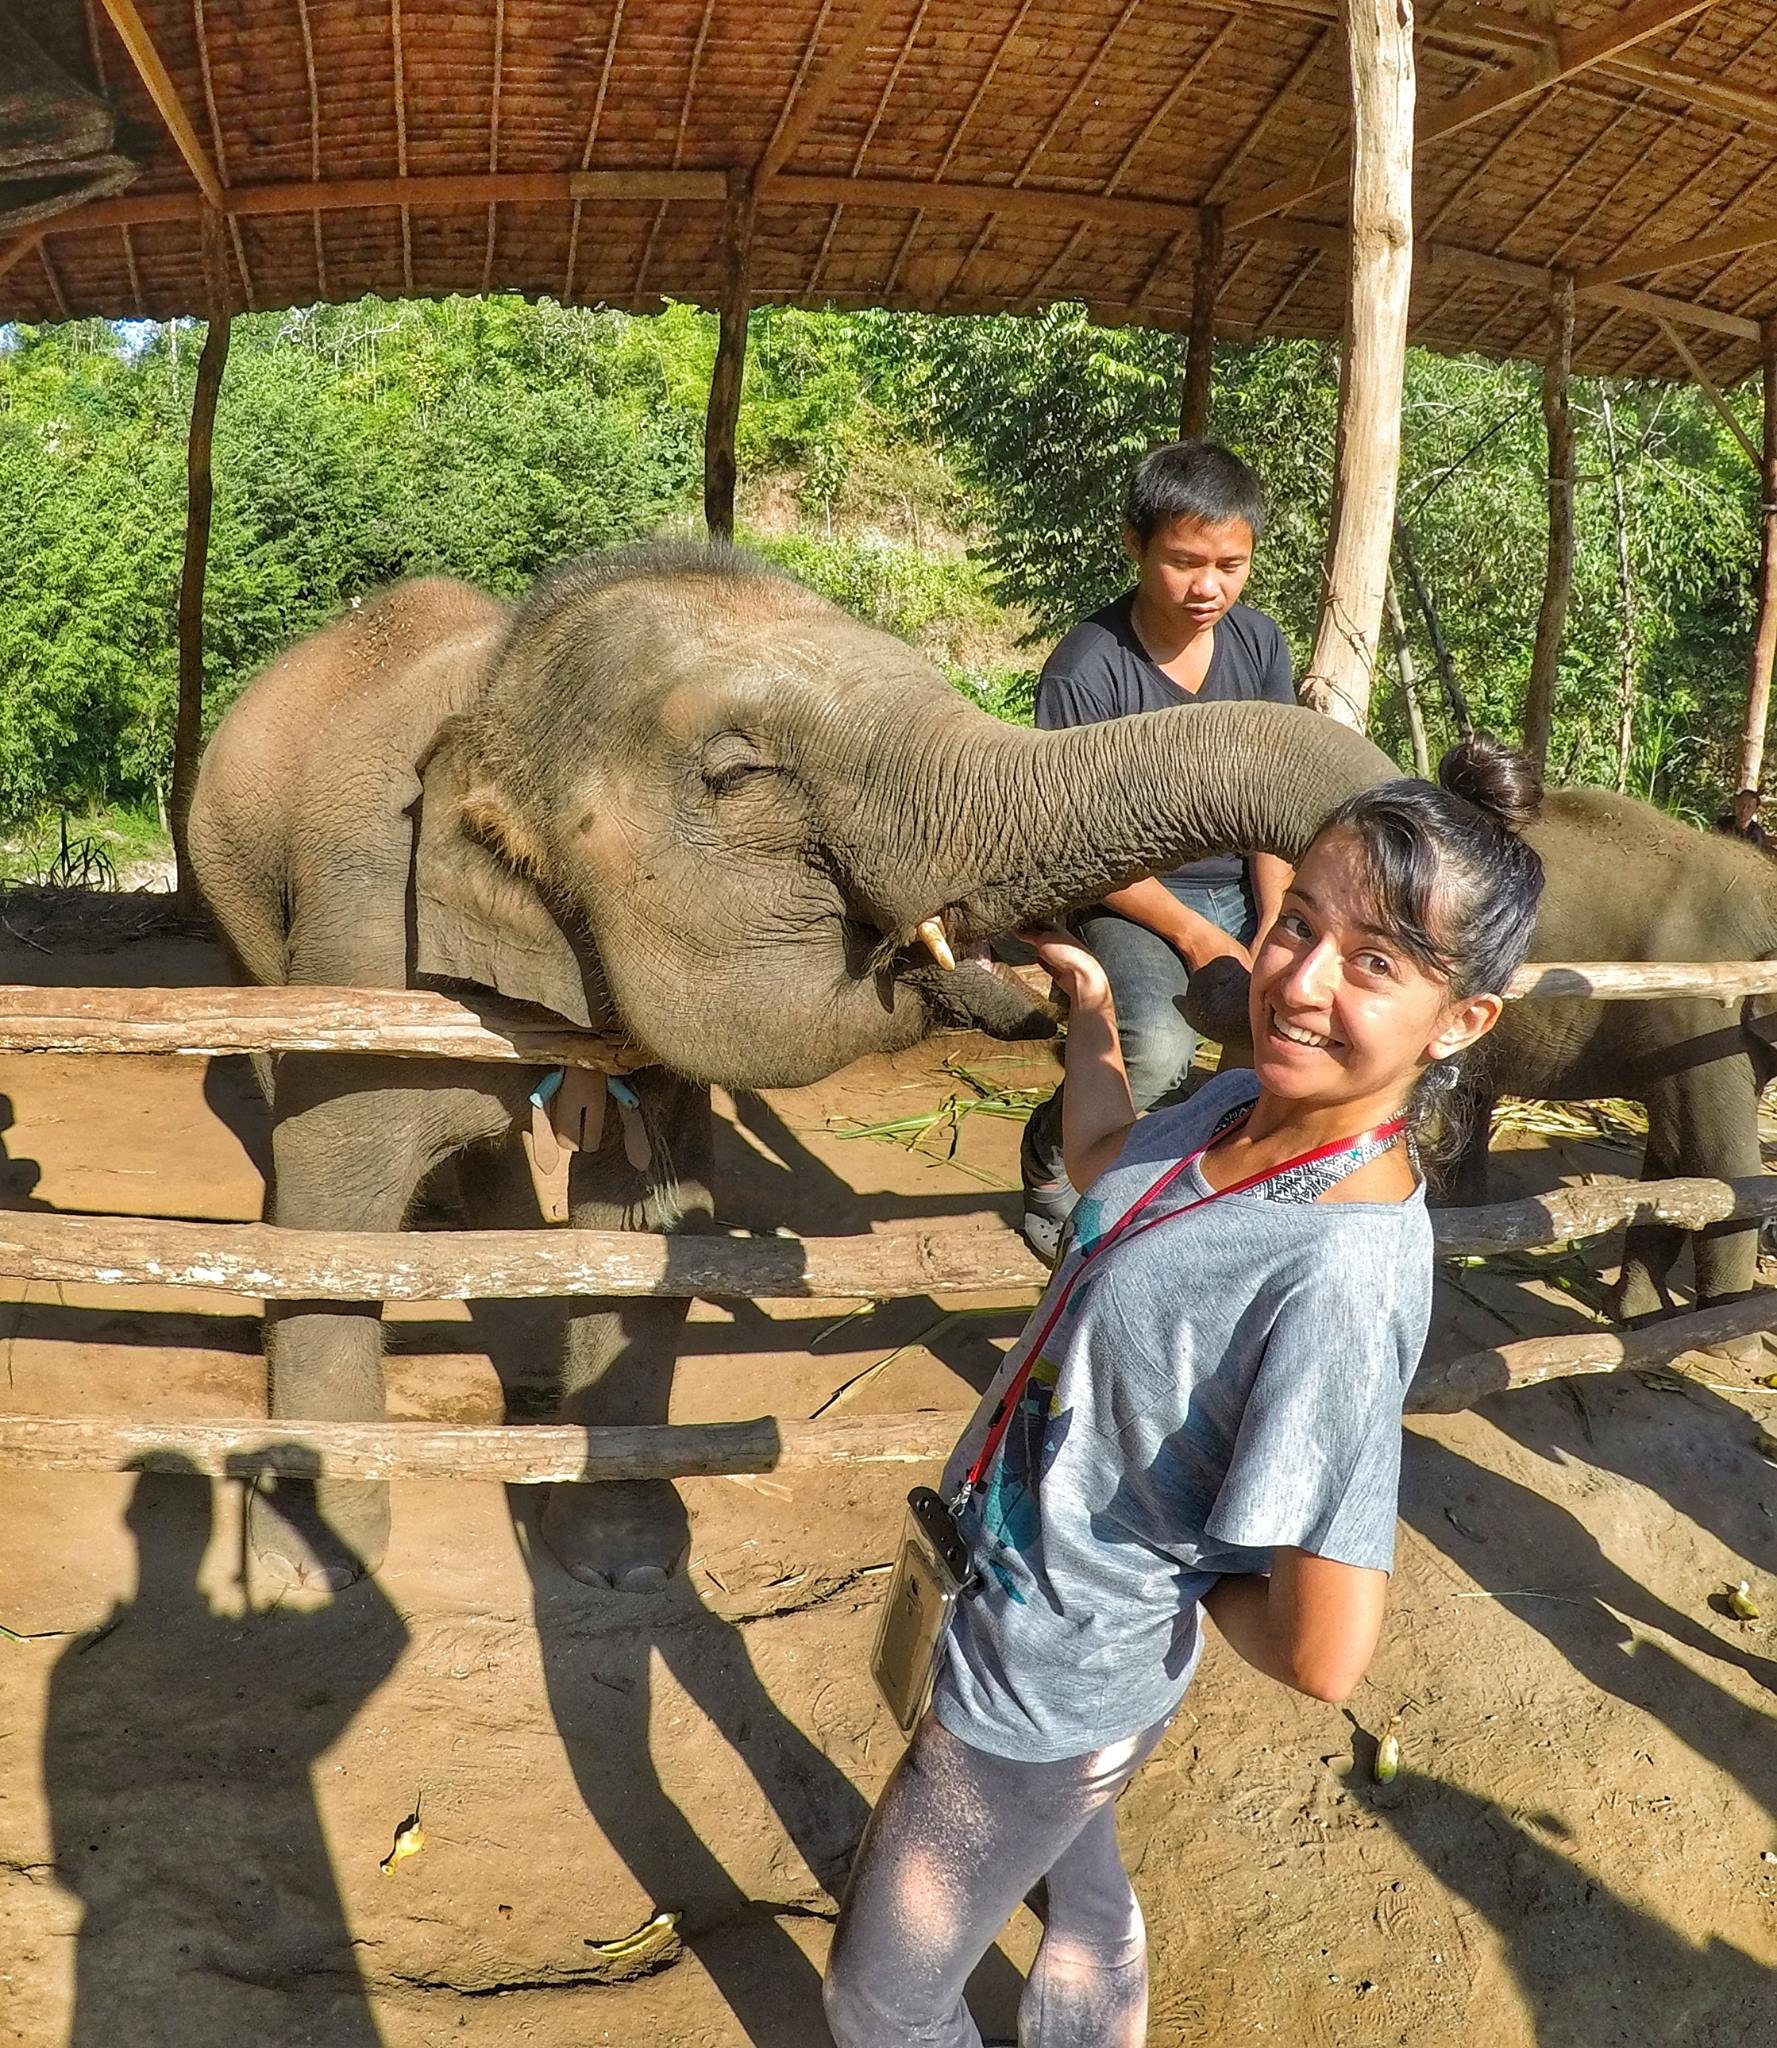 feeding elephants in Chiang Mai, Thailand - Top Things to do